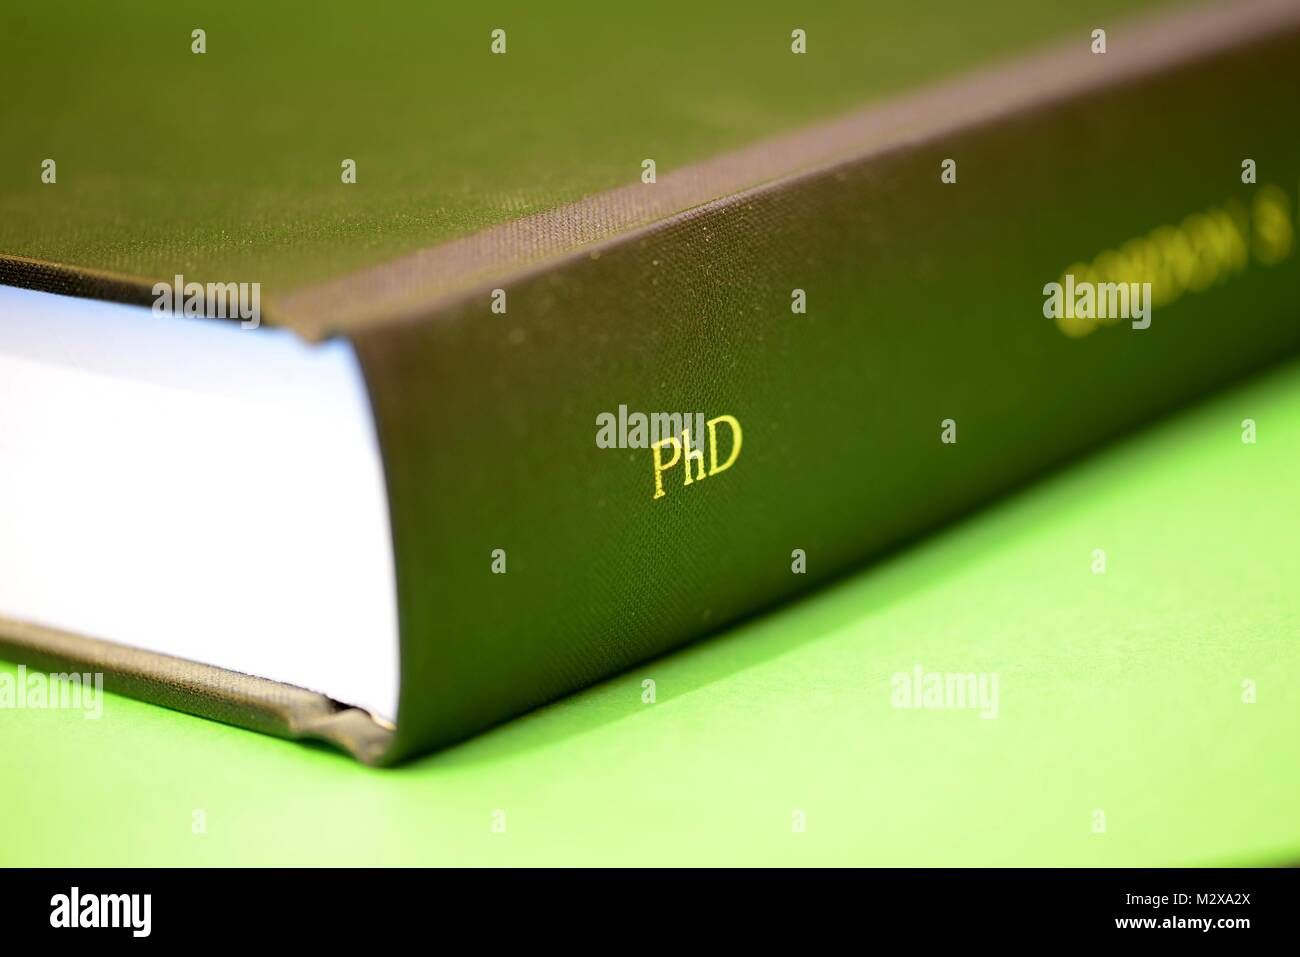 Completed PhD Dissertation Thesis Stock Photo